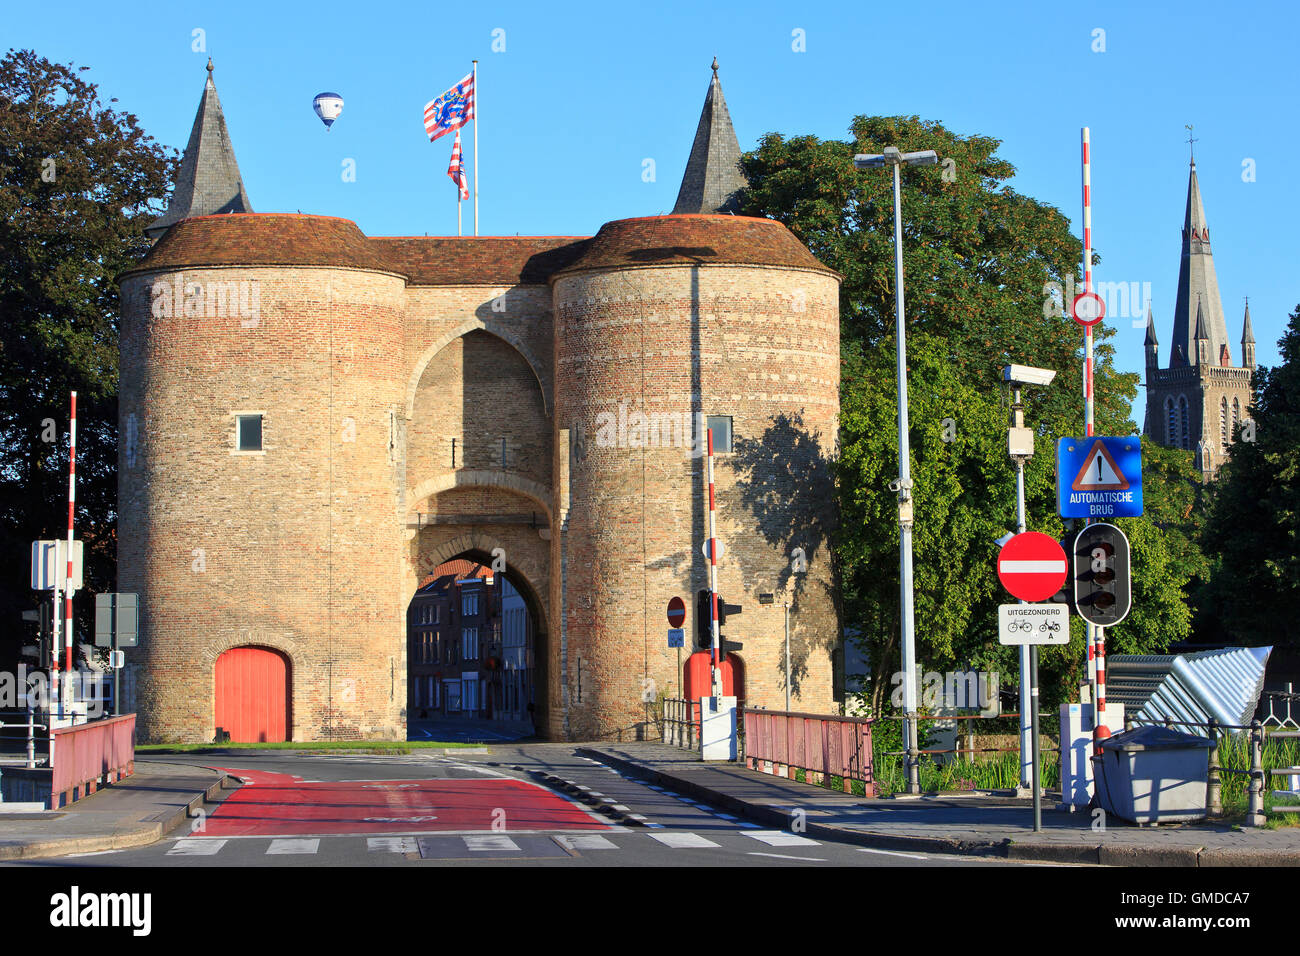 The Gate of Ghent - Gentpoort (1400) in Bruges, Belgium Stock Photo